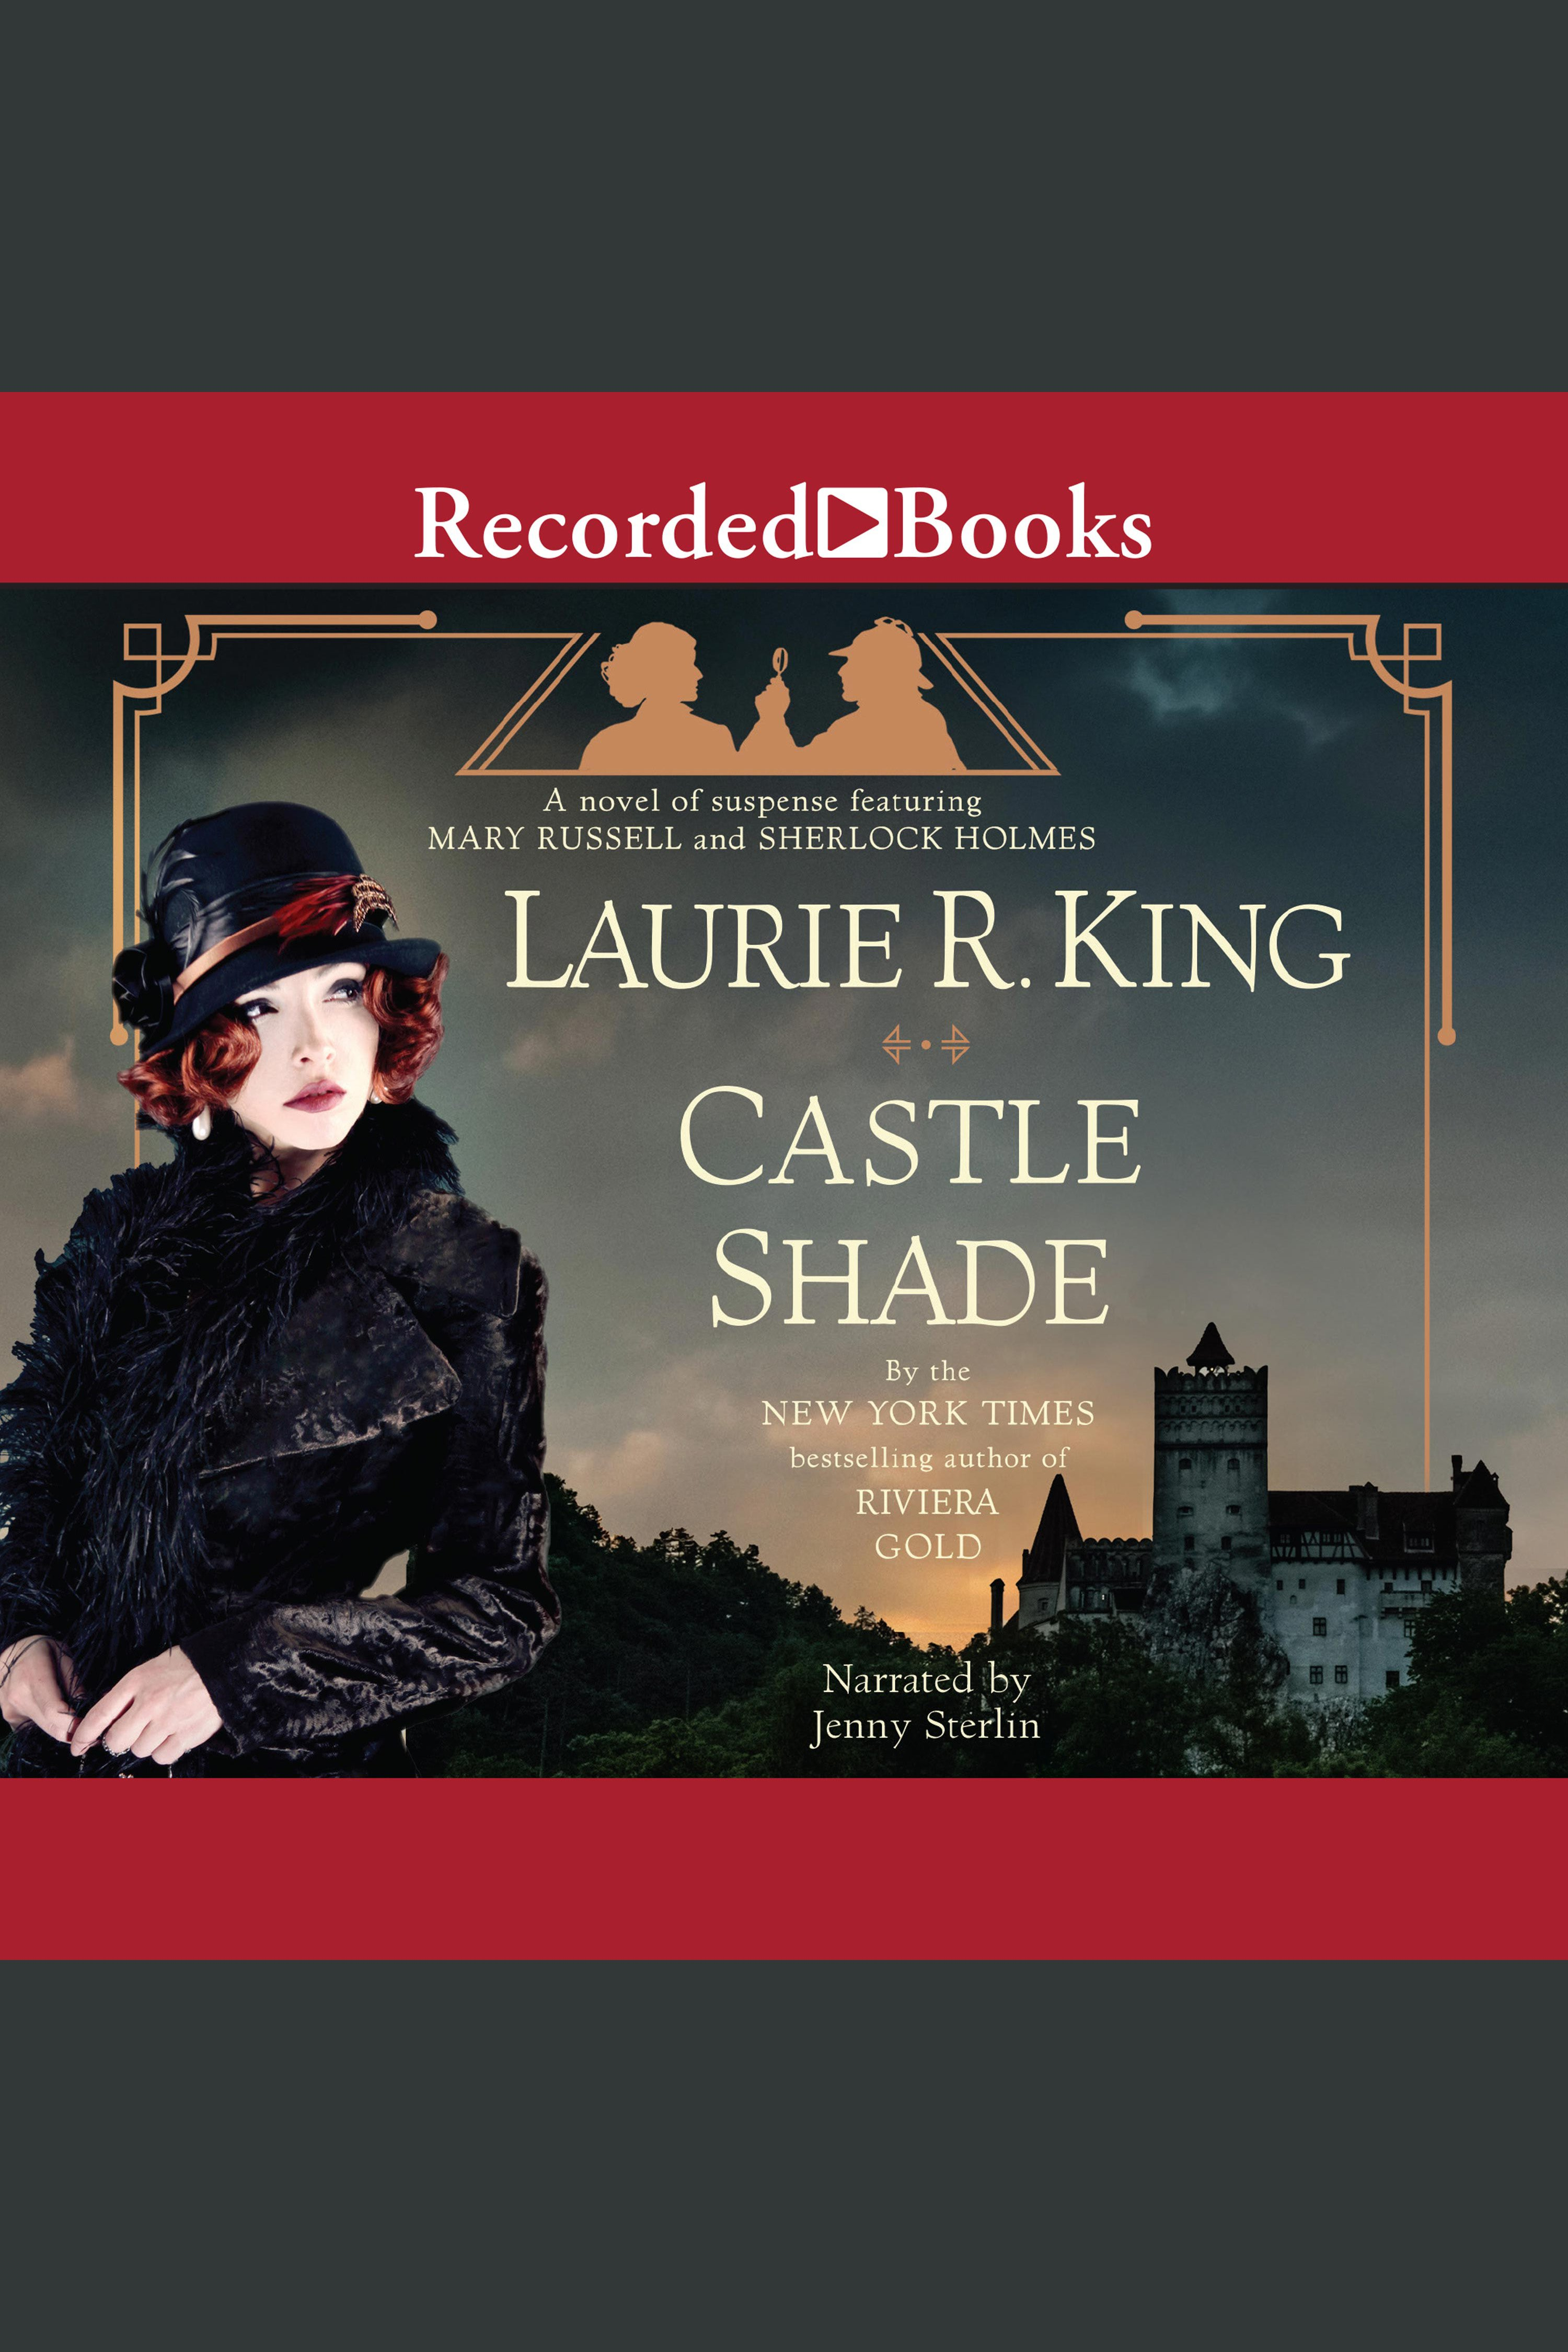 Castle Shade A Novel of Suspense Featuring Mary Russell and Sherlock Holmes.